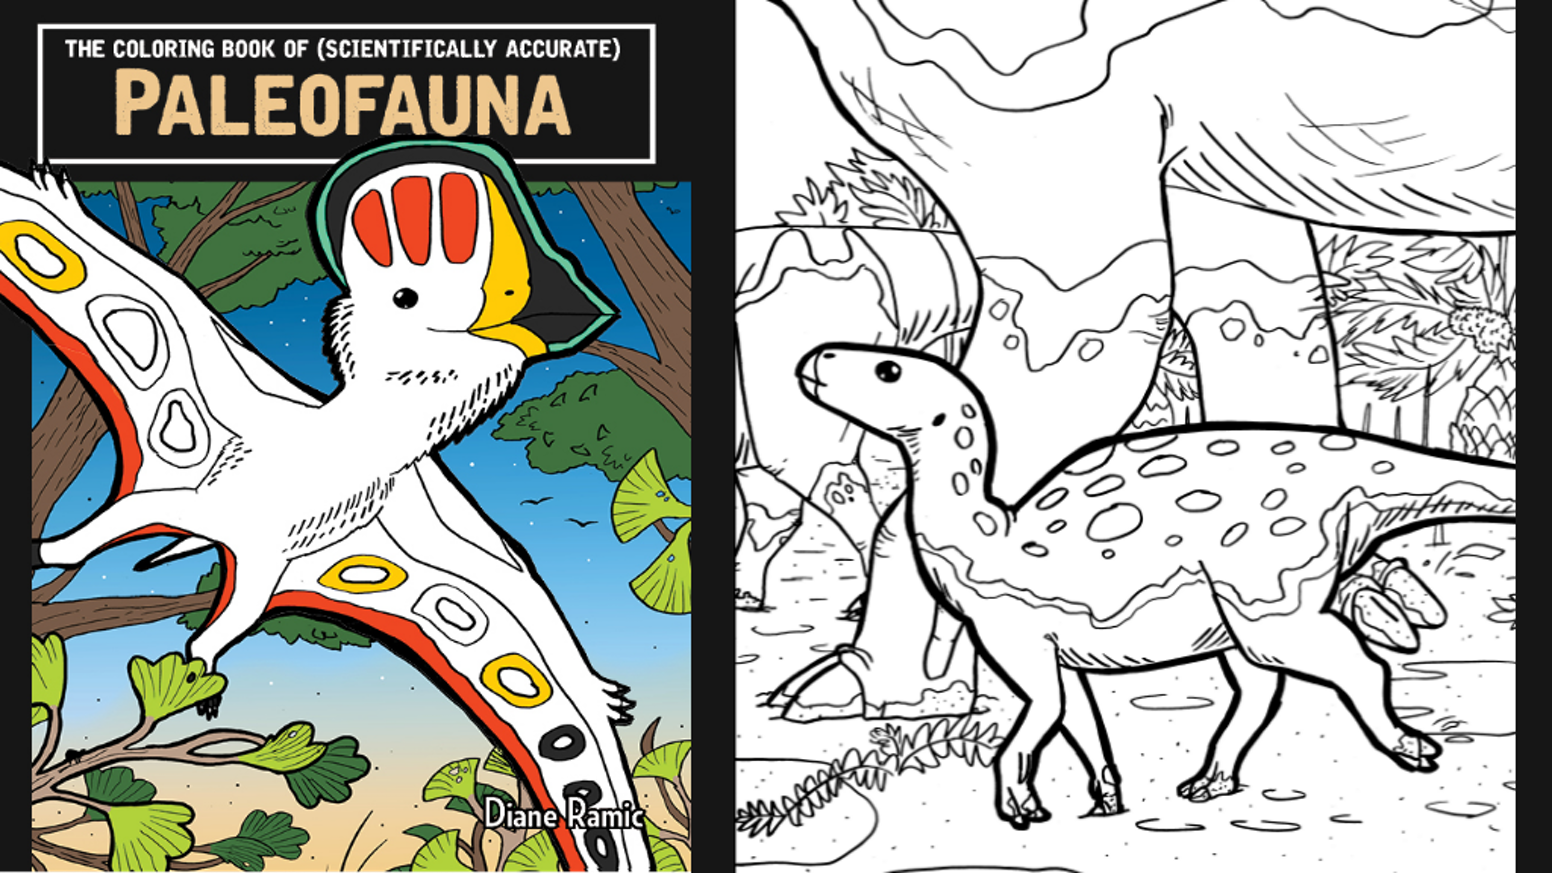 The Coloring Book of PaleoFauna! by Diane Ramic — Kickstarter